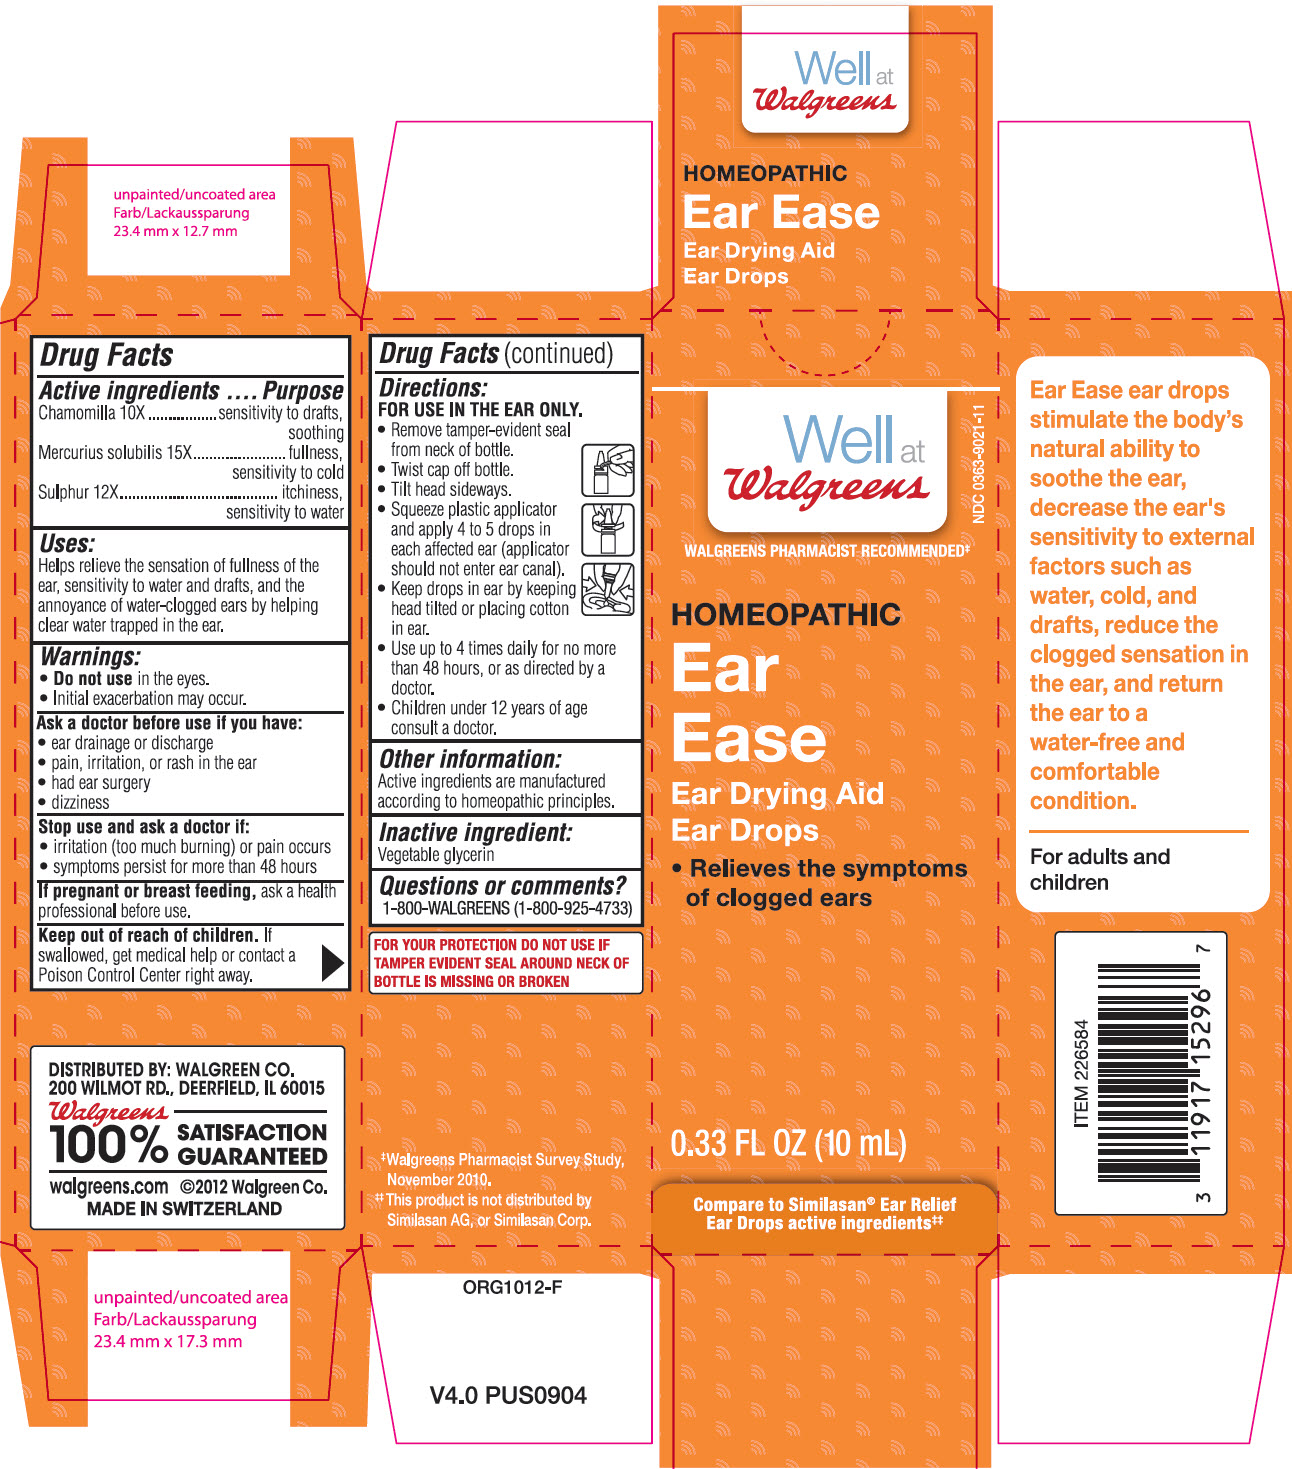 Ear Ease (Chamomile And Mercurius Solubilis And Sulphur) Solution [Walgreen Company]